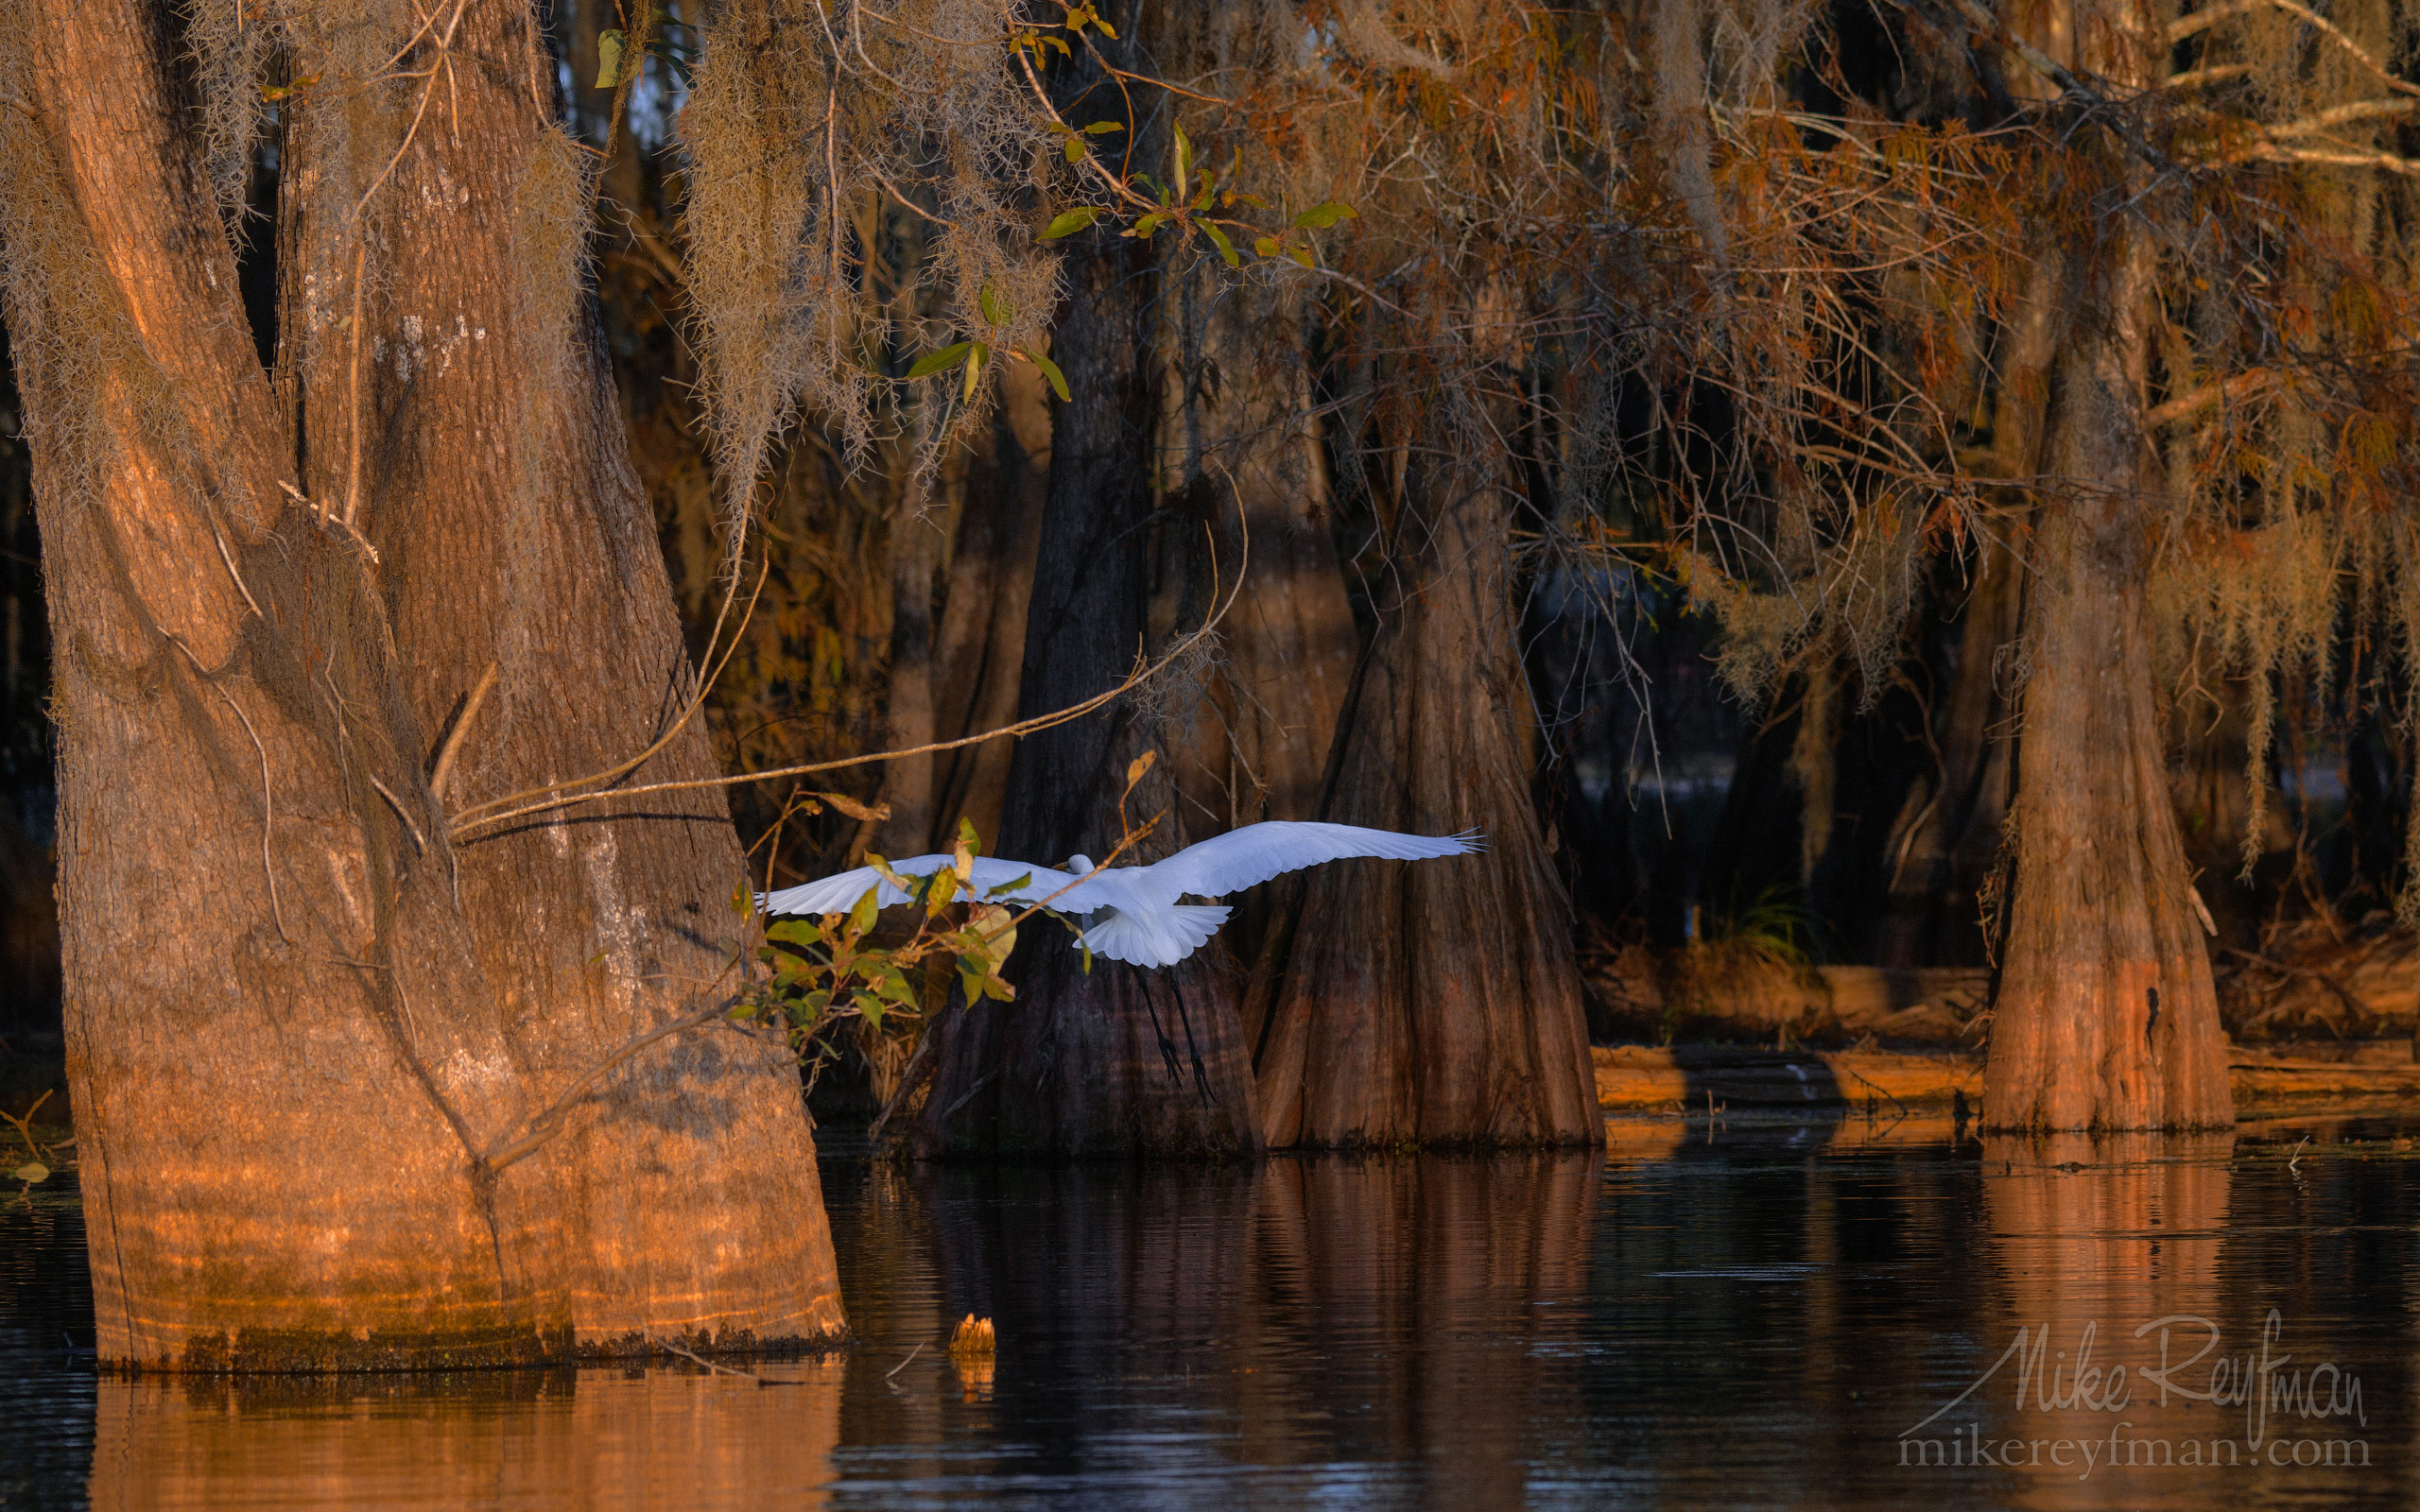 Great Egret with the buttressed trunks of Bald Cypress and Tupelo trees in the background. Lake Martin, Louisiana, US 067-LT1-50A4073.jpg - Bold Cypress and Tupelo Trees in the swamps of Atchafalaya River Basin. Caddo, Martin and Fousse Lakes. Texas/Louisiana, USA. - Mike Reyfman Photography